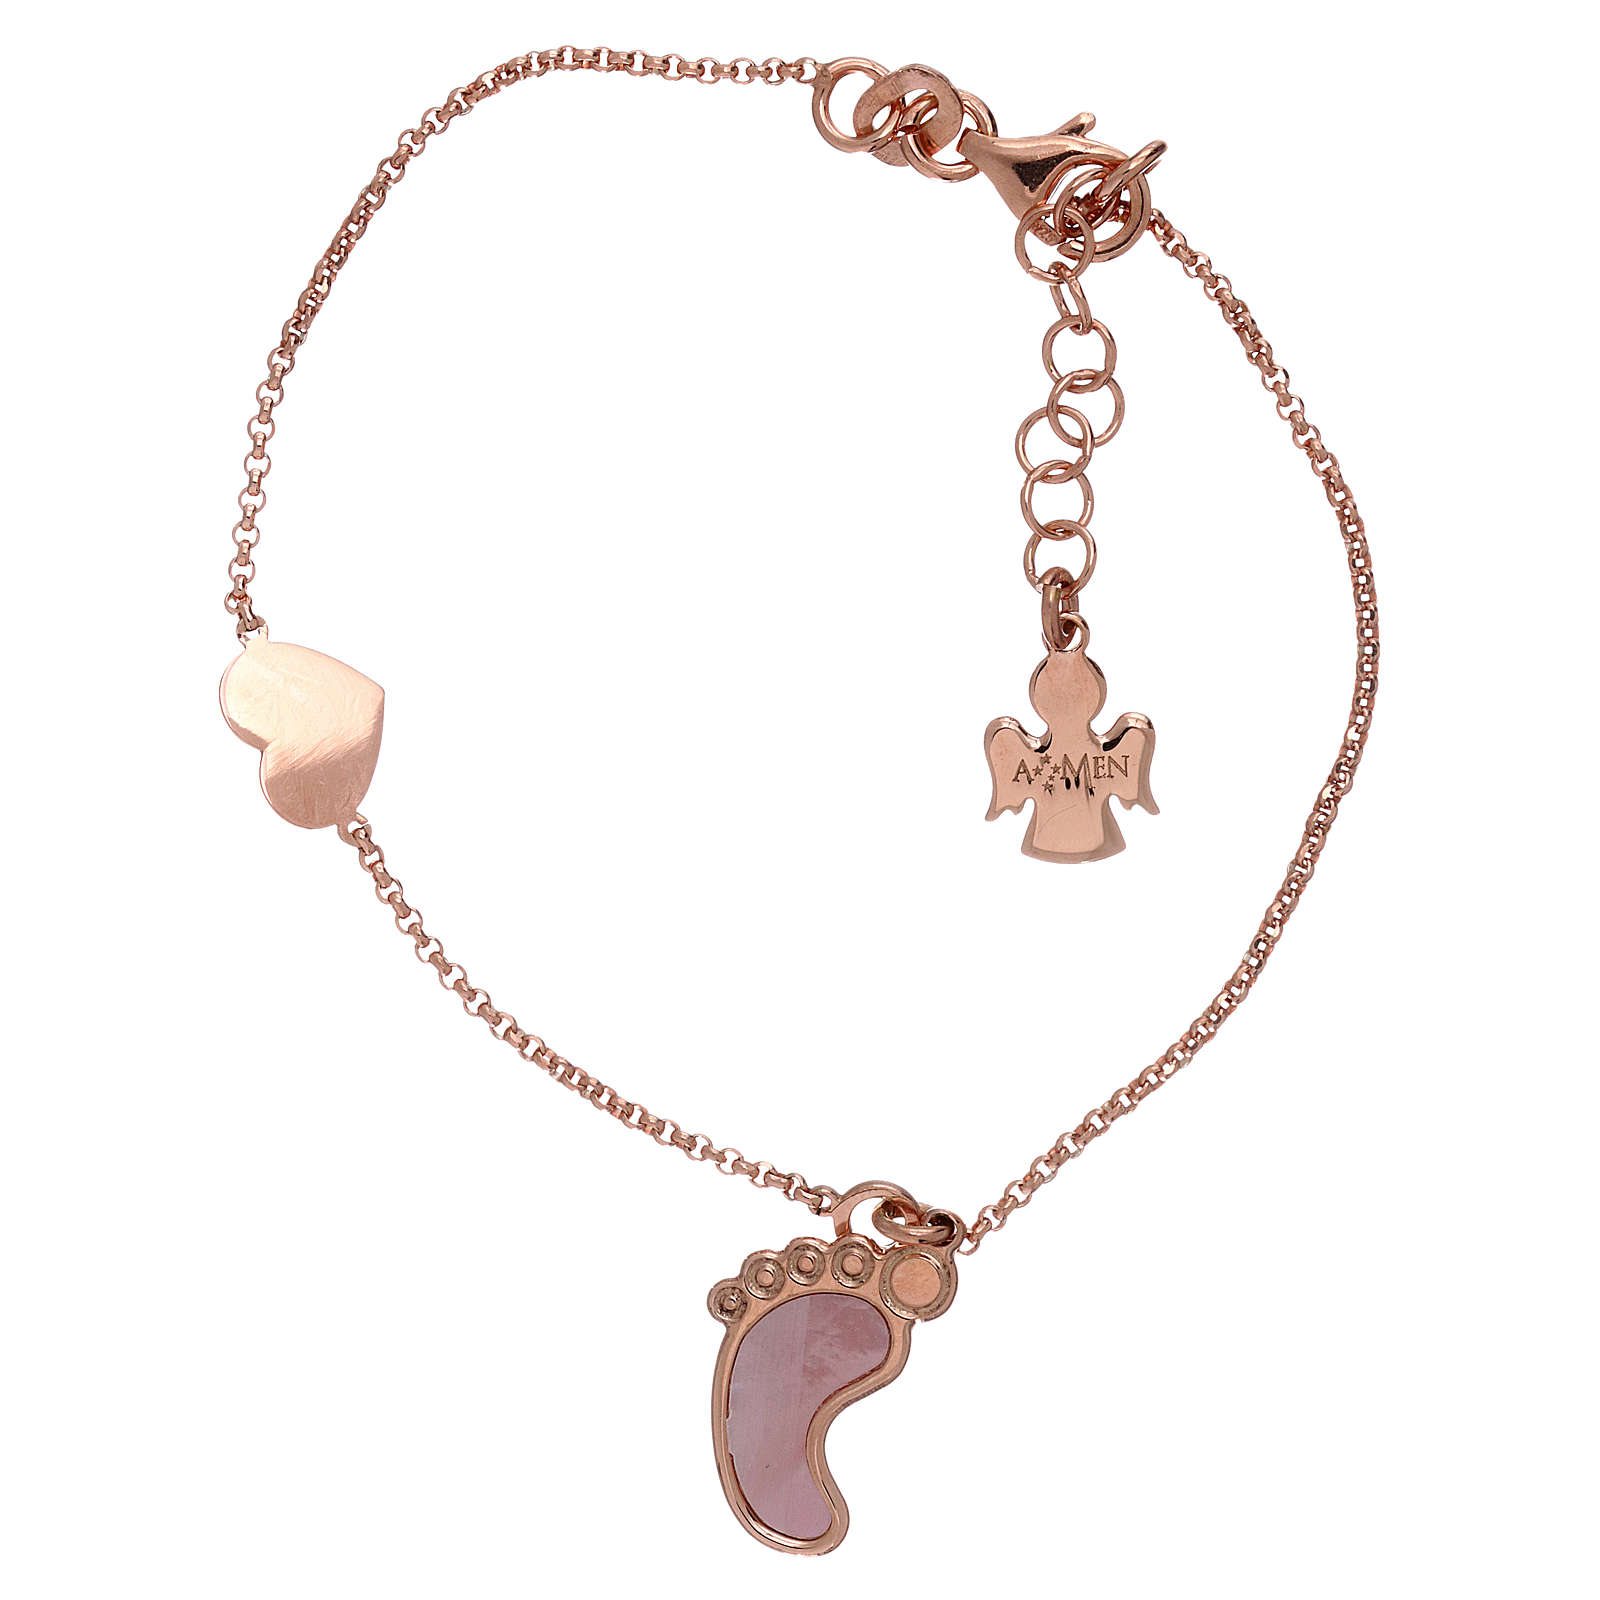 AMEN bracelet in pink 925 silver with foot-shaped pendant and heart 4